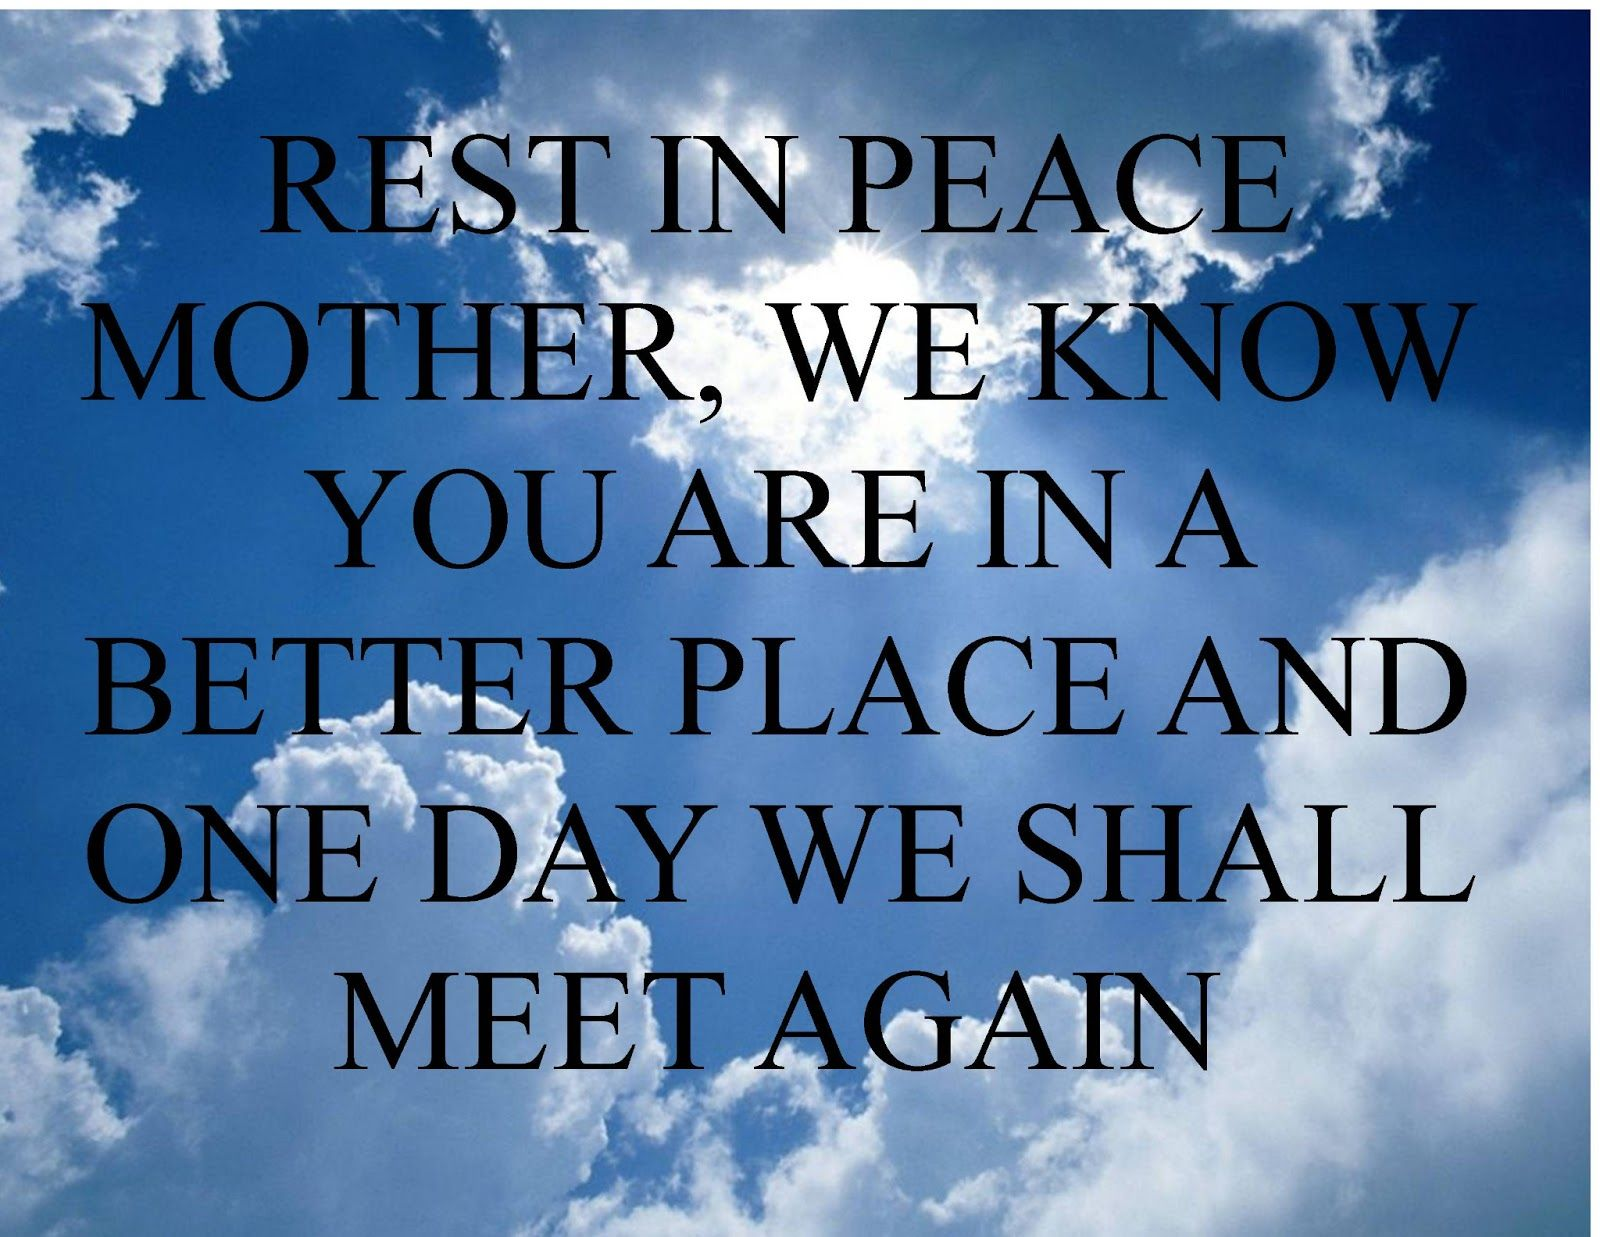 Rest In Peace Quotes For A Family Friend : Rest in peace poems facebook mother